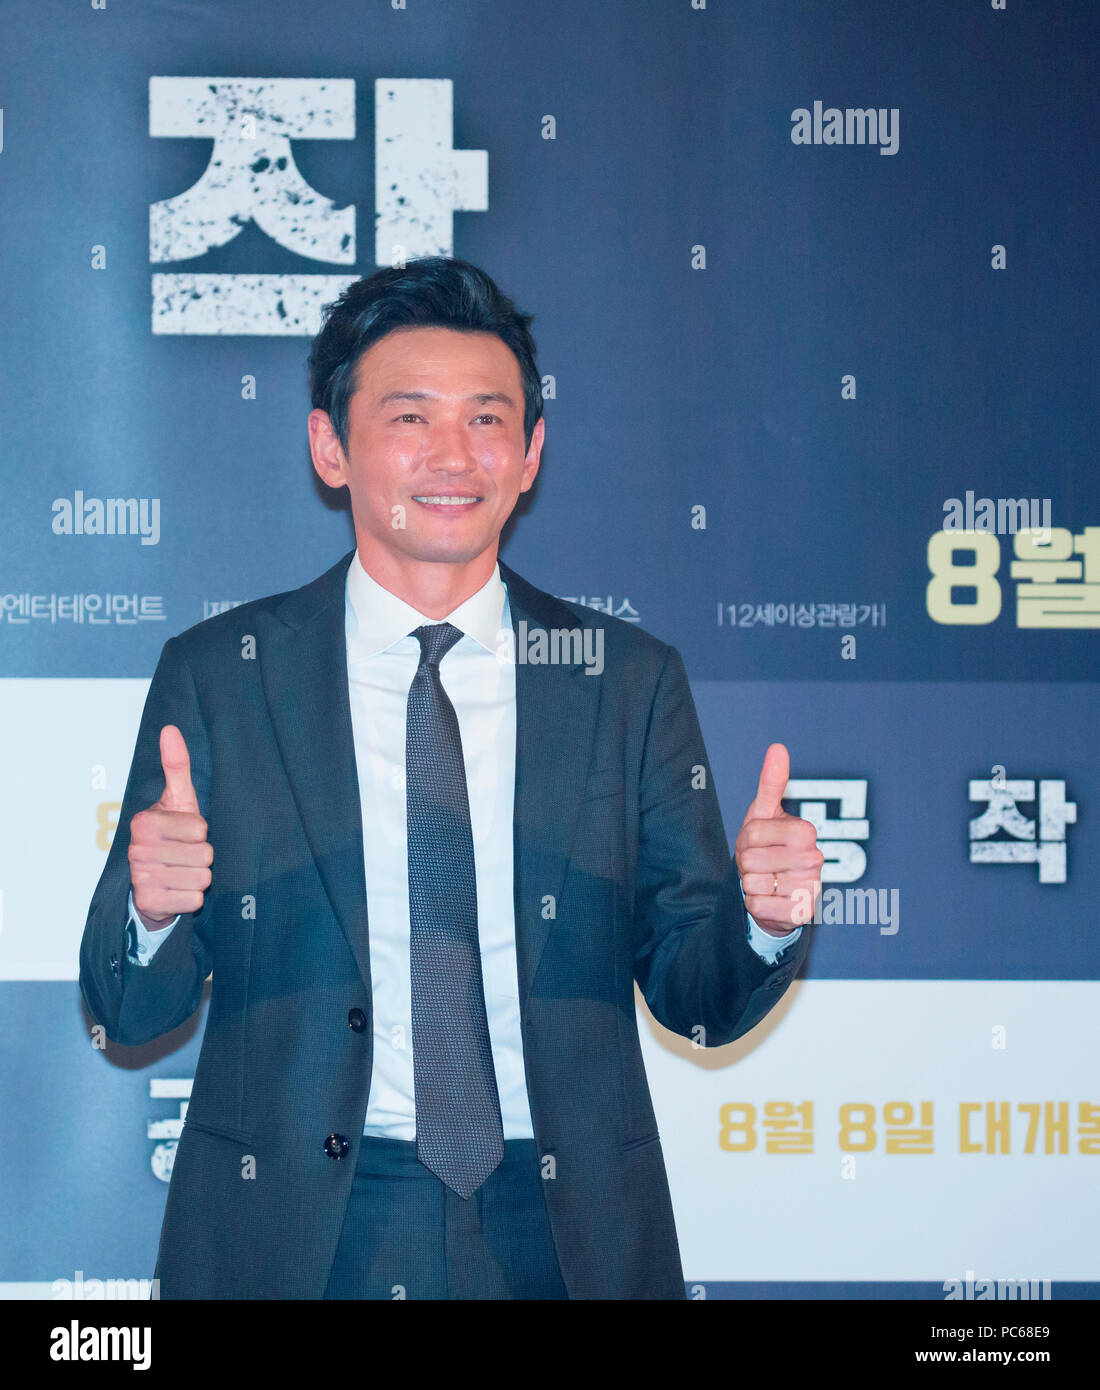 Hwang Jung-Min, July 31, 2018 : South Korean actor Hwang Jung-Min attends a press conference for his new film 'The Spy Gone North' at a theatre in Seoul, South Korea. The spy film tells the story of a South Korean spy who goes undercover as a businessman in North Korea in the 1990s to infiltrate North's nuclear facilities using the codename 'Black Venus'. Credit: Lee Jae-Won/AFLO/Alamy Live News - Stock Image